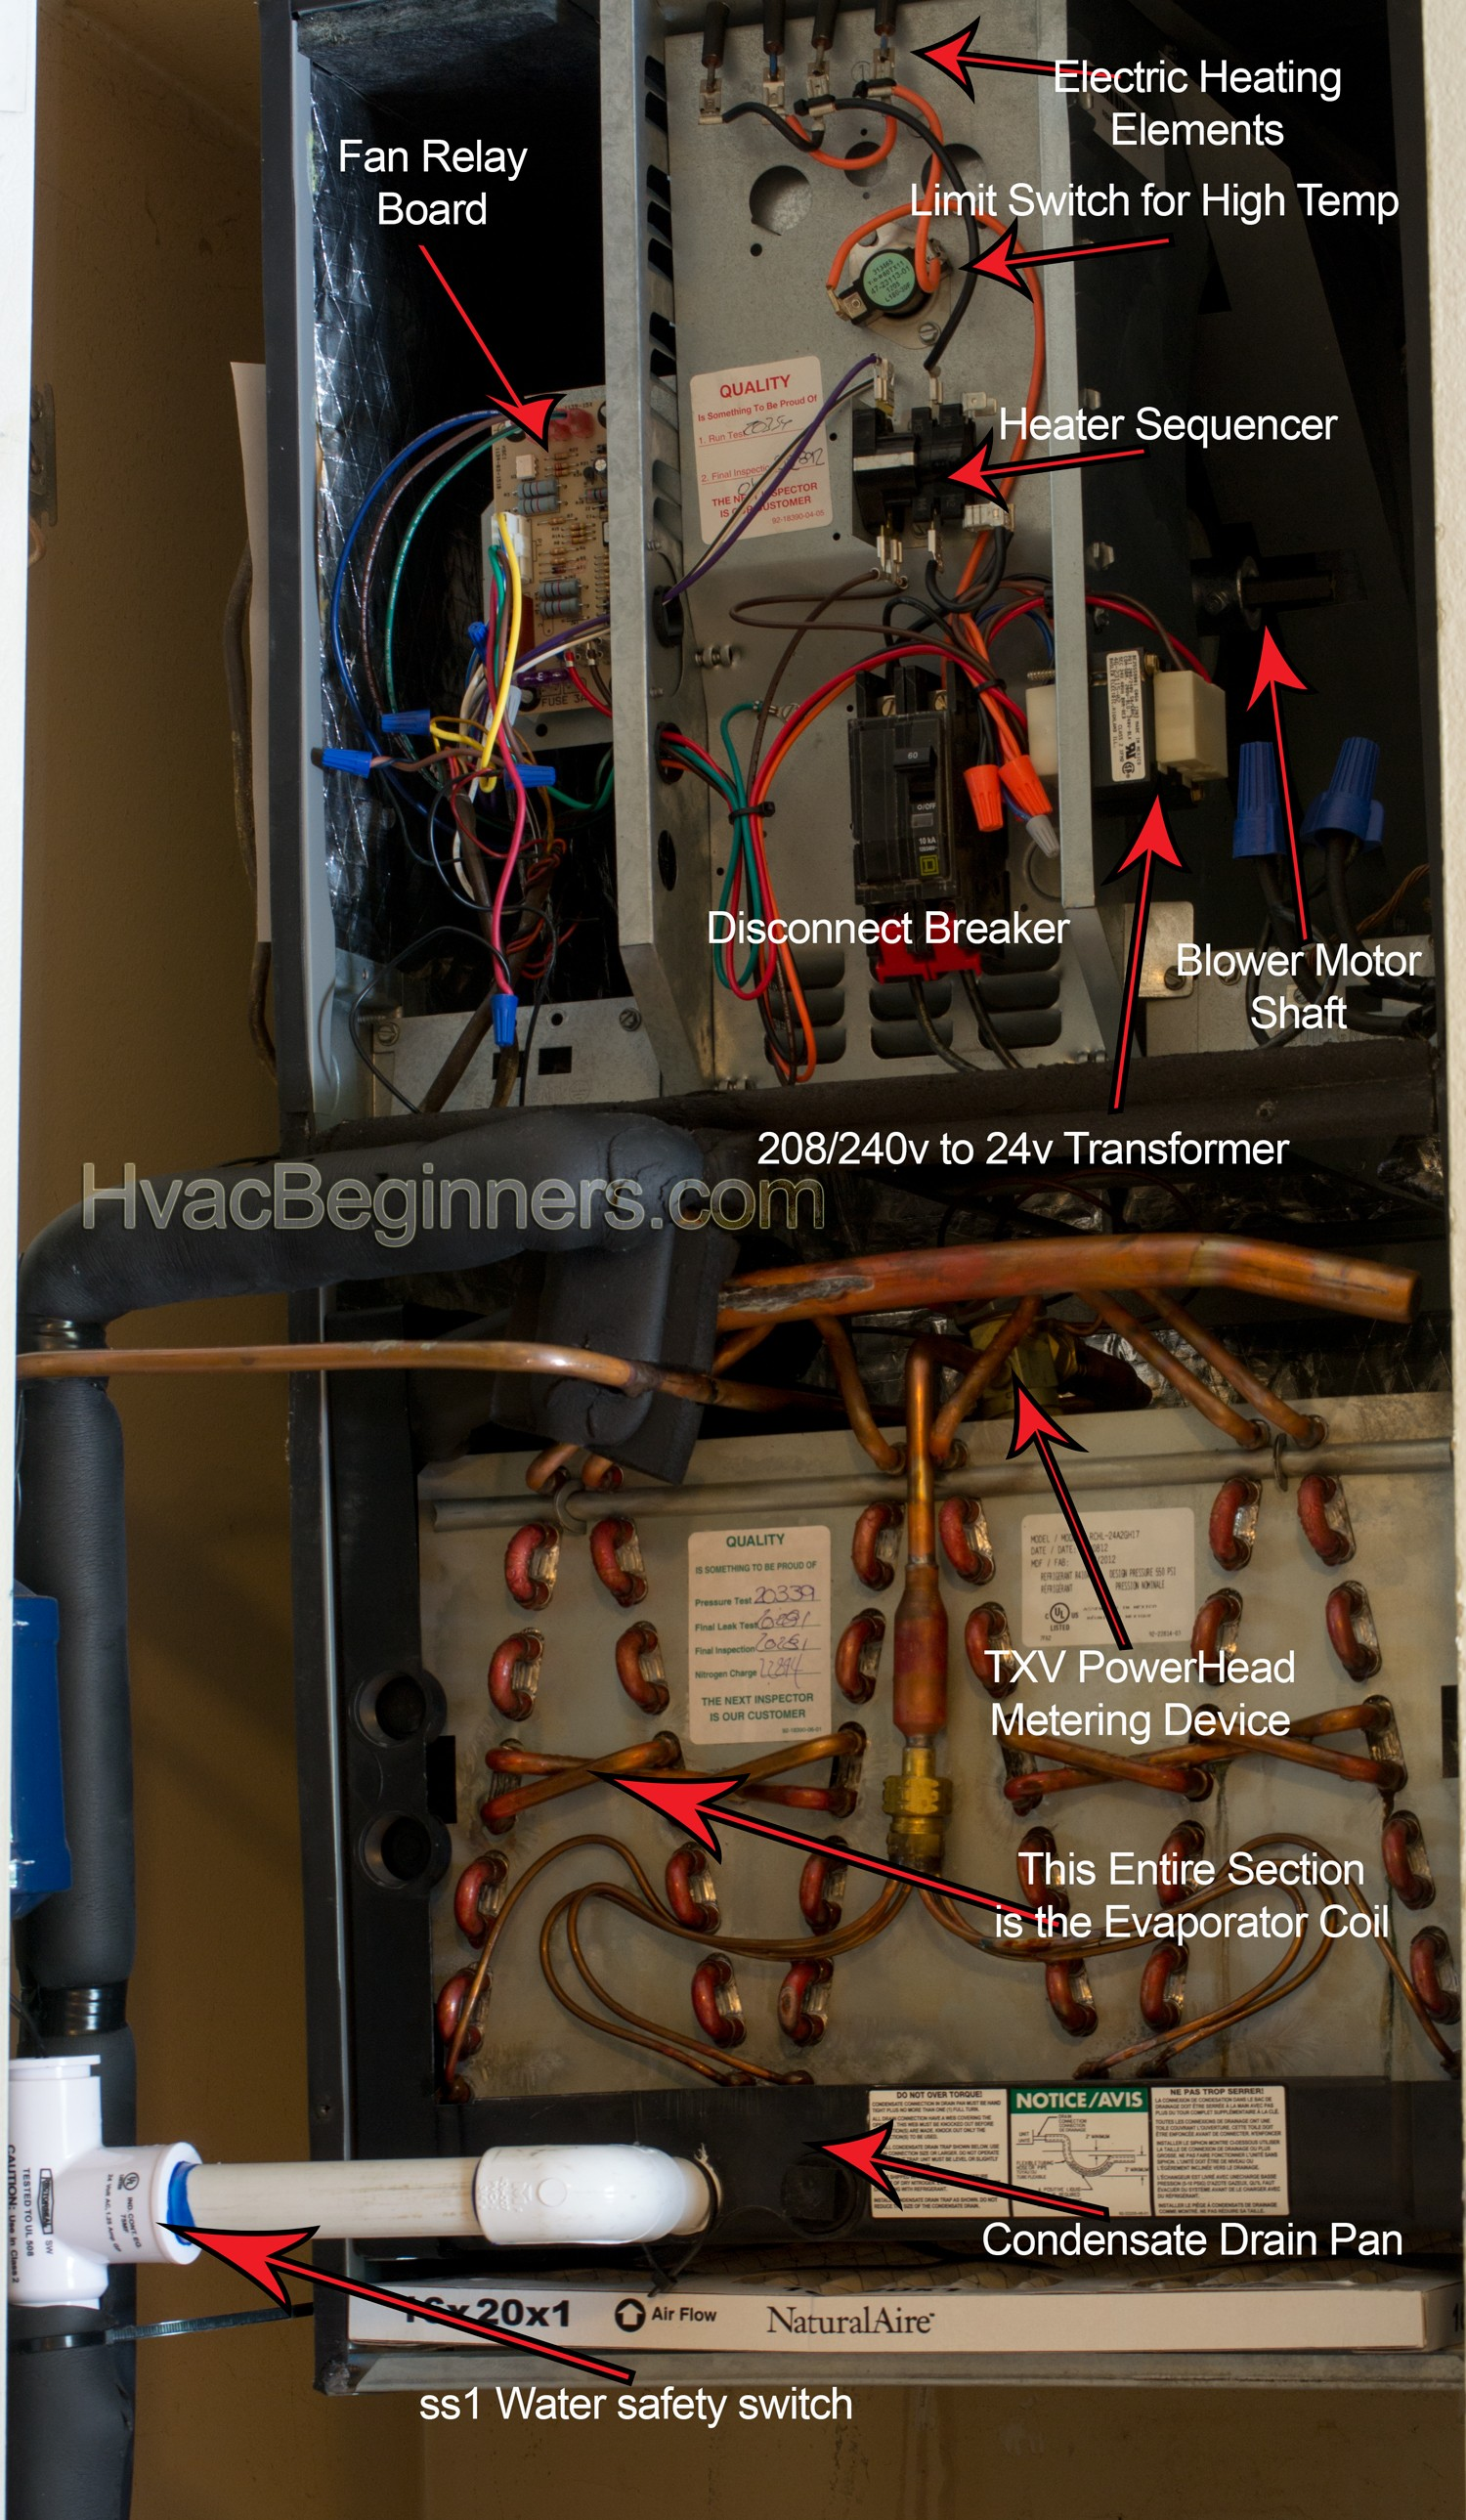 Air Handler Parts And Accessories Hvac Training For